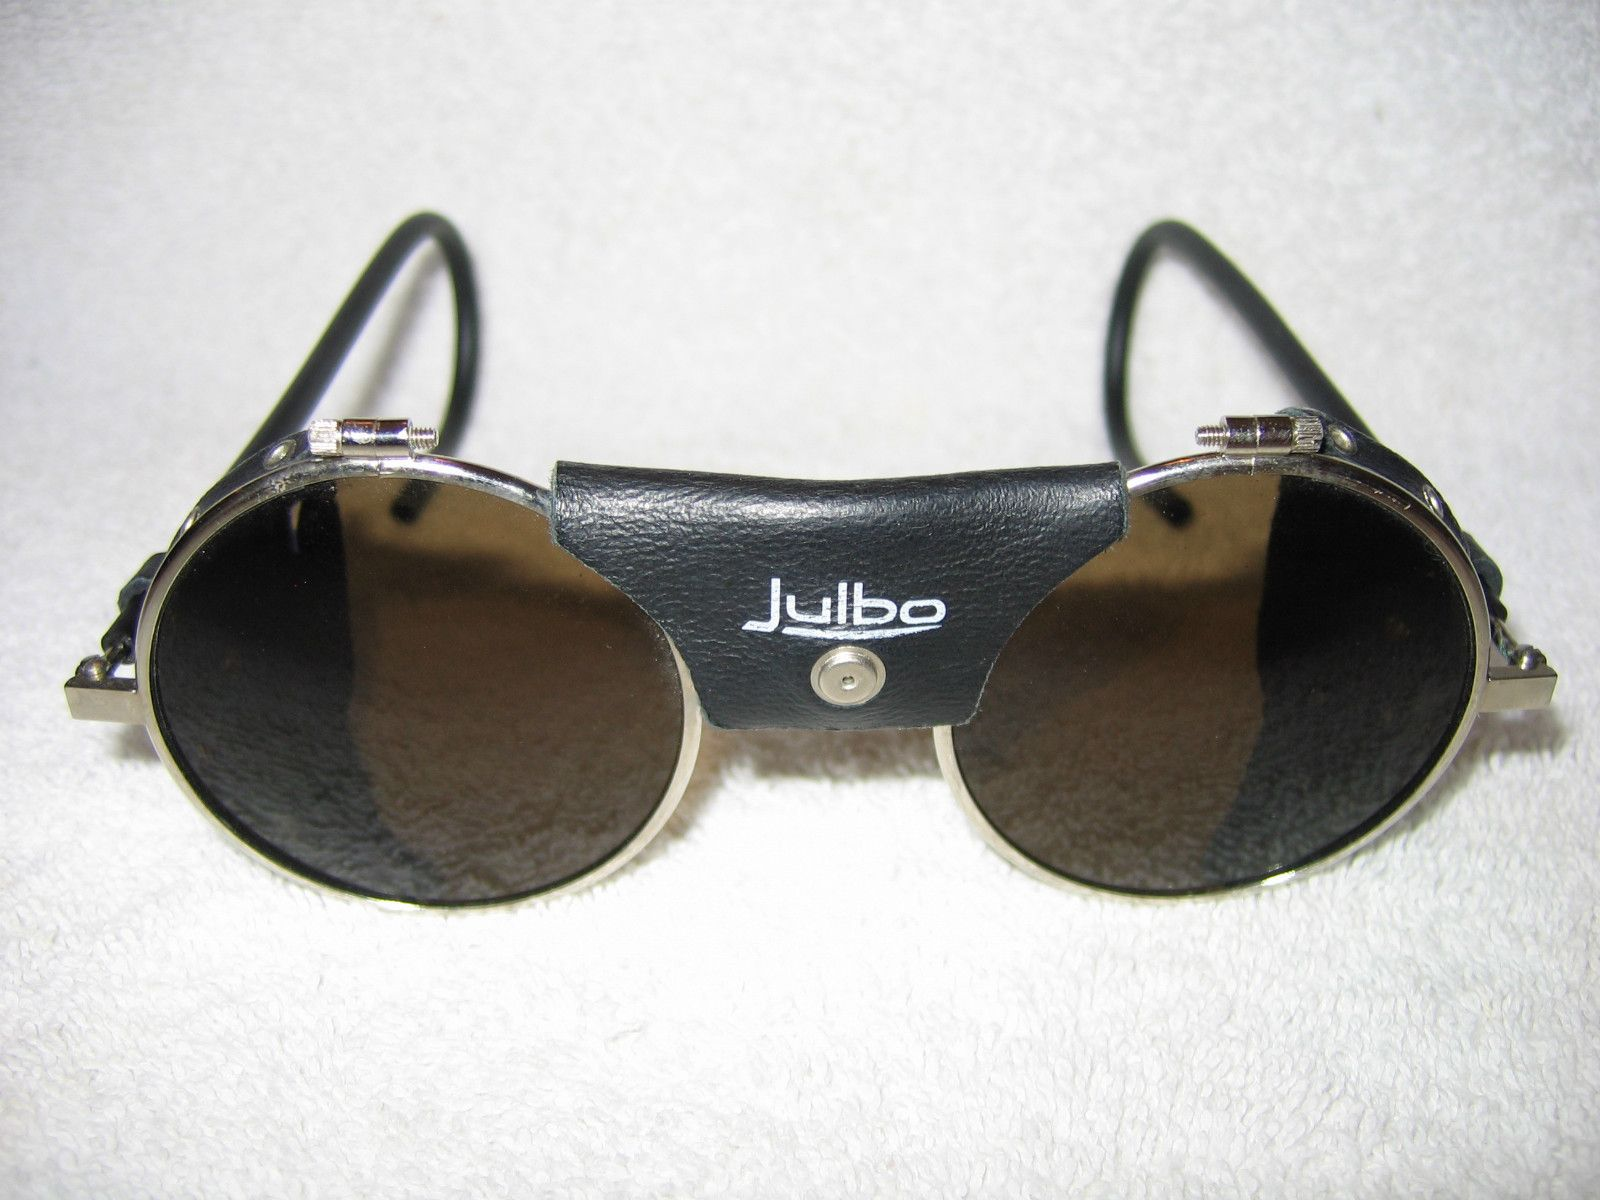 464a6a08031811 Julbo Sunglasses (Vintage Glacier Mountaineering Steampunk Leather  Blinders, Men s Pre-owned Designer Sun